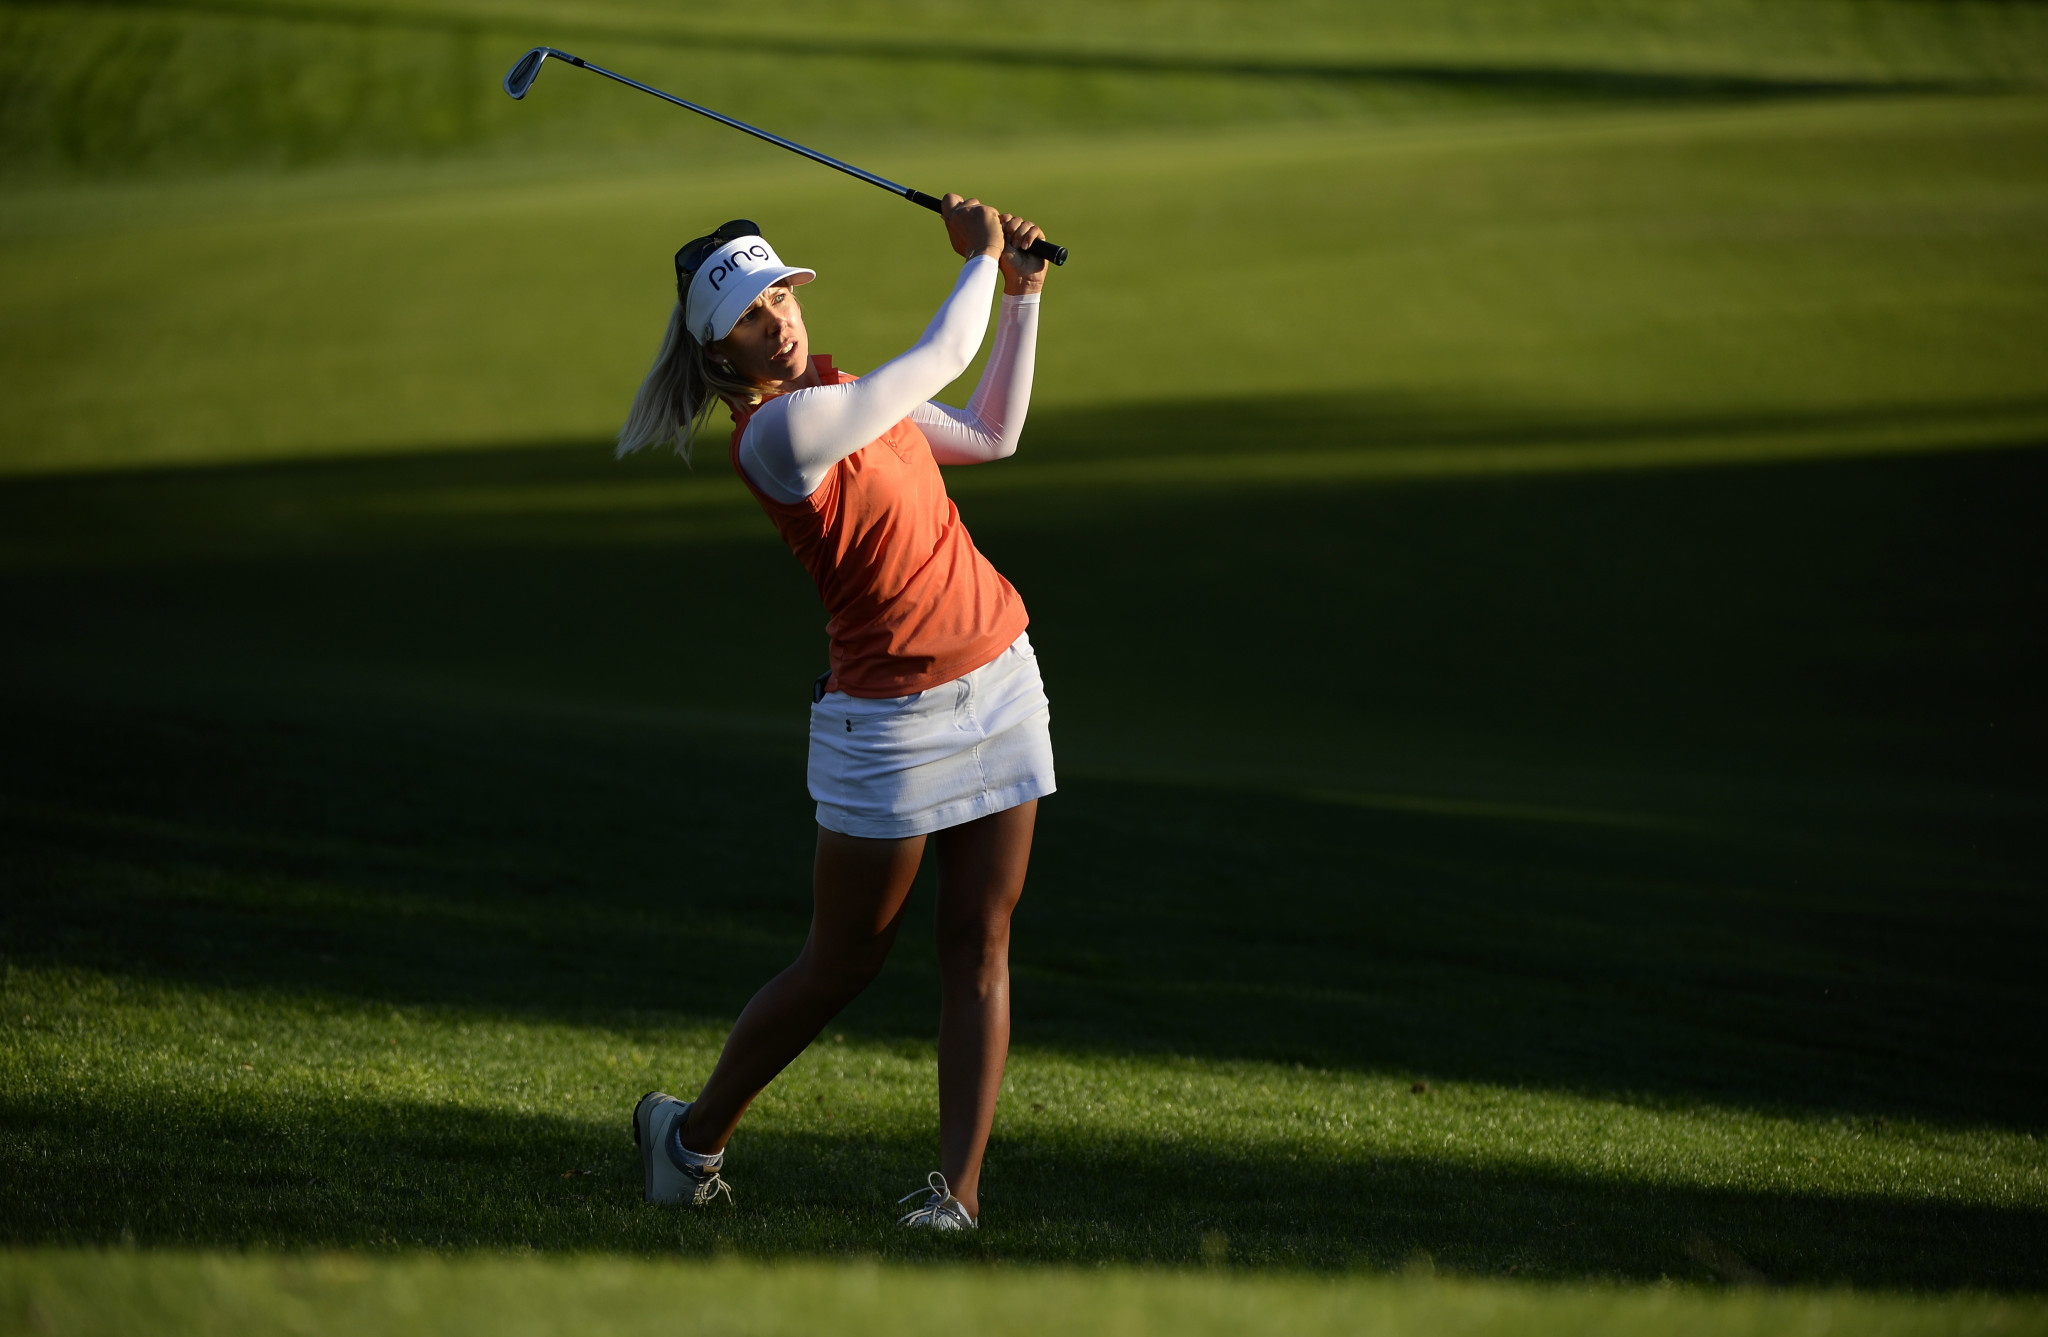 Lindberg leads ANA Inspiration after impressive opening round